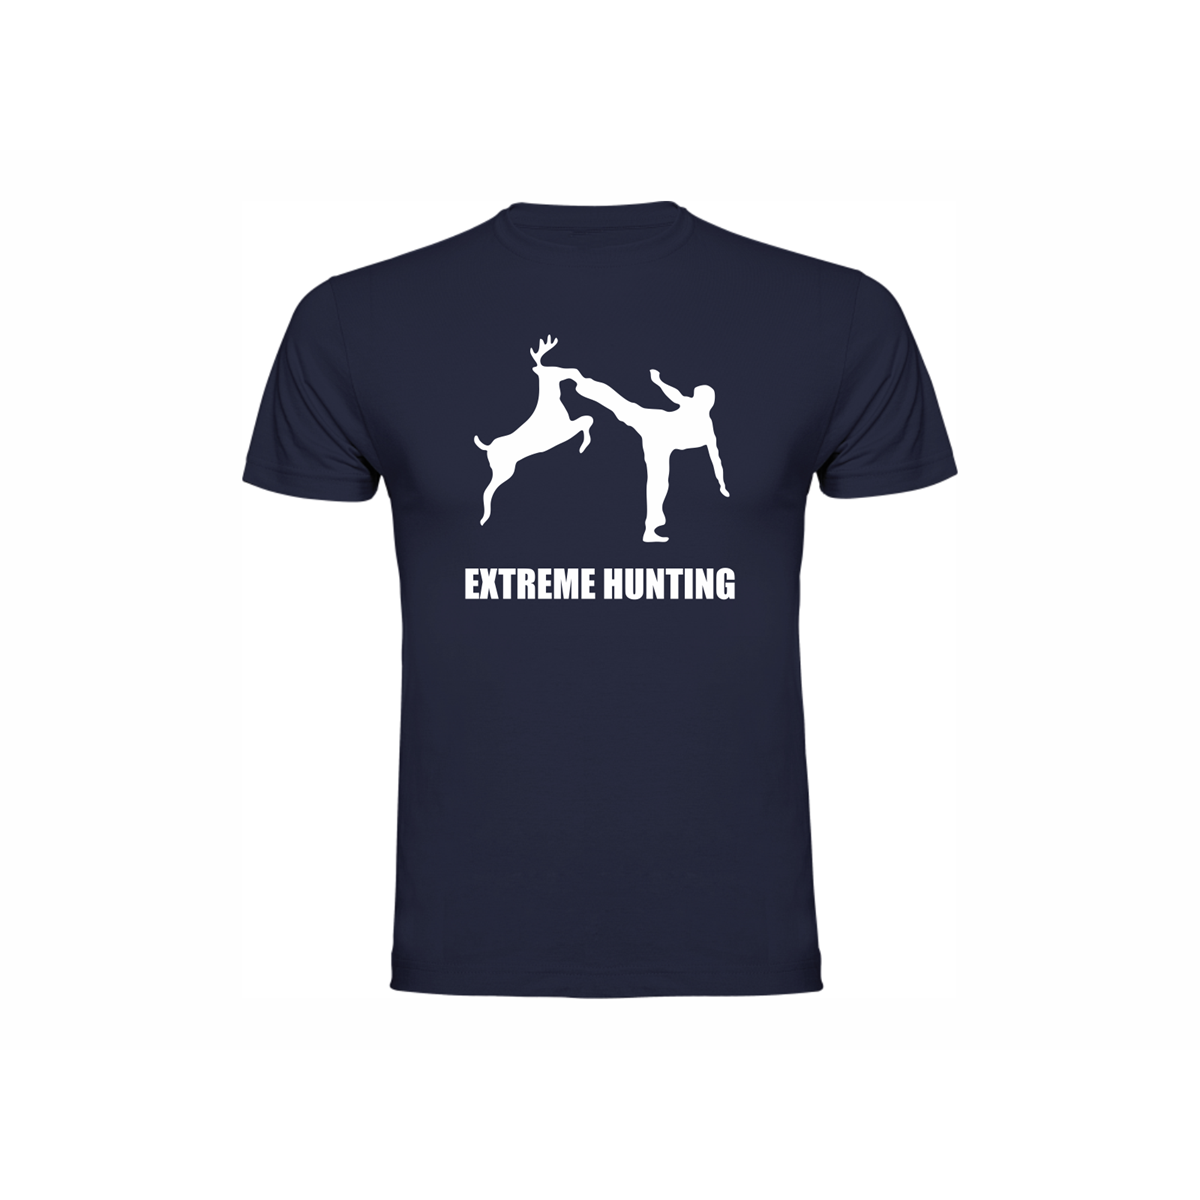 Hunting Funny Shirt Design